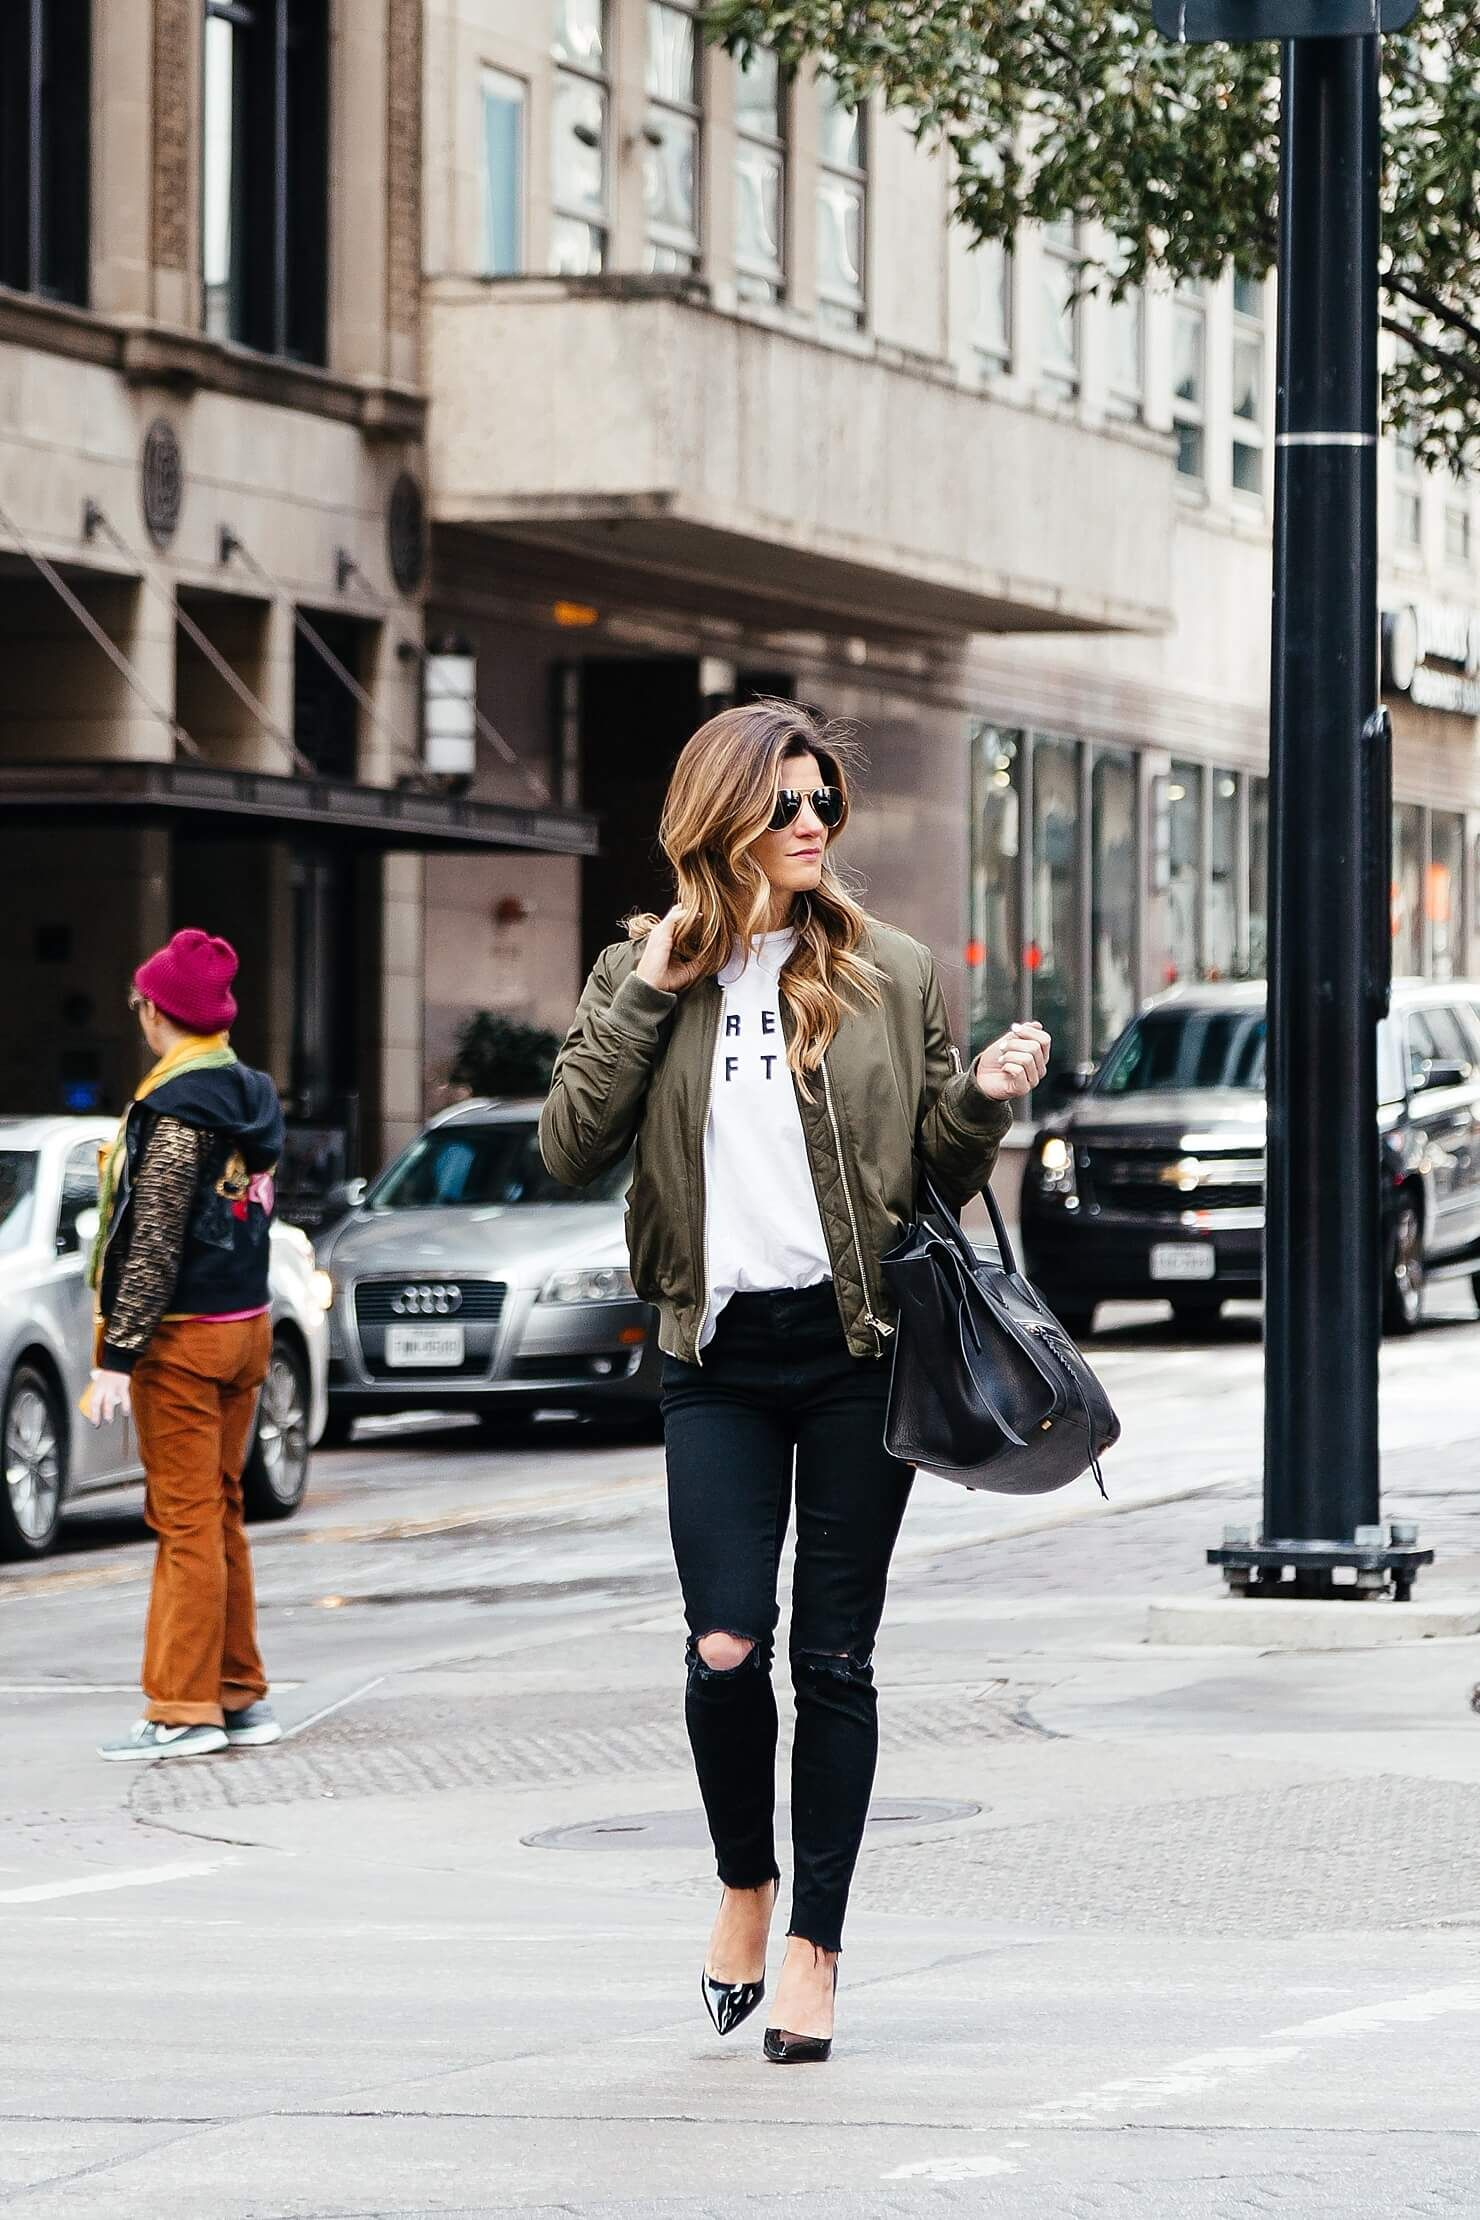 b299c7f7395 ... 30+ outfit ideas with black jeans! how to wear a bomber jacket, topshop  olive green bomber jacket, sincerely jules dream